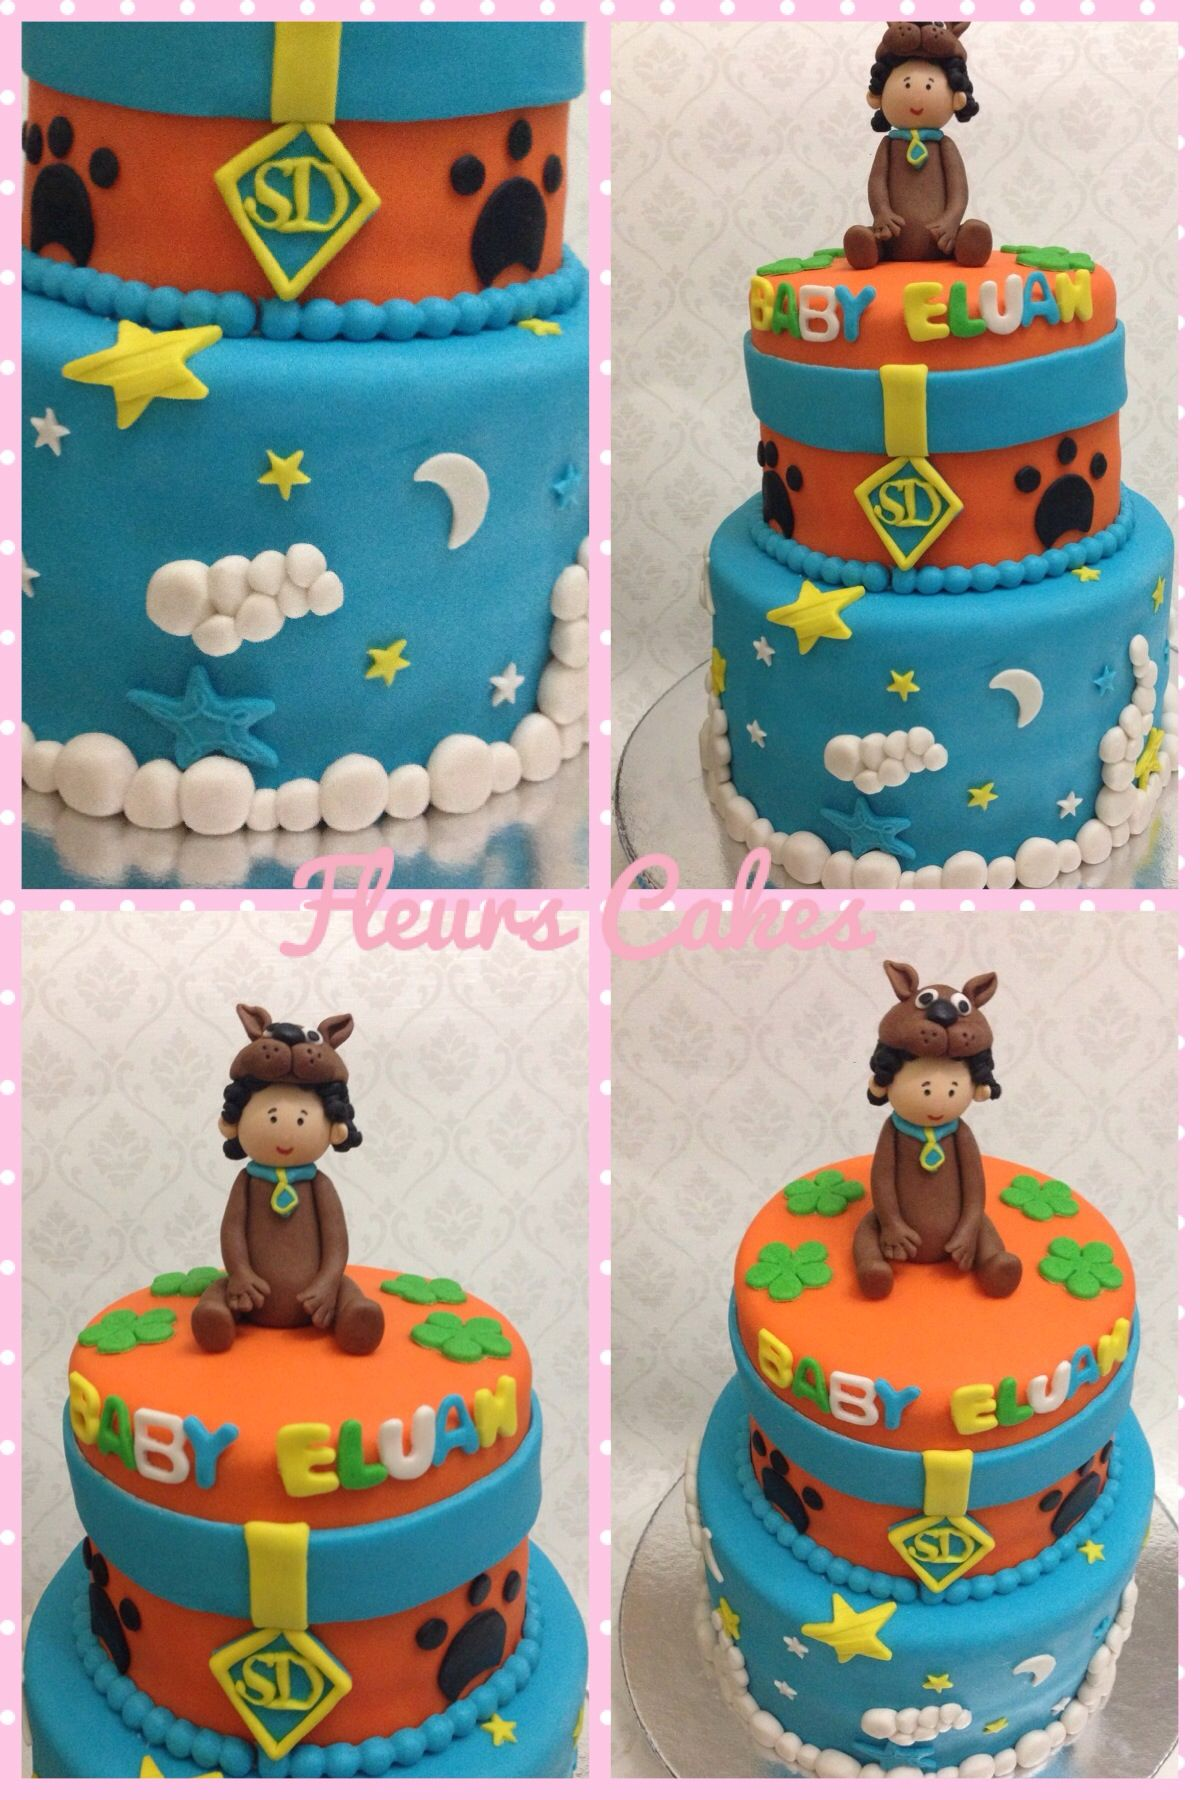 Scooby Doo Theme For A Baby Shower Toy Story Baby Baby